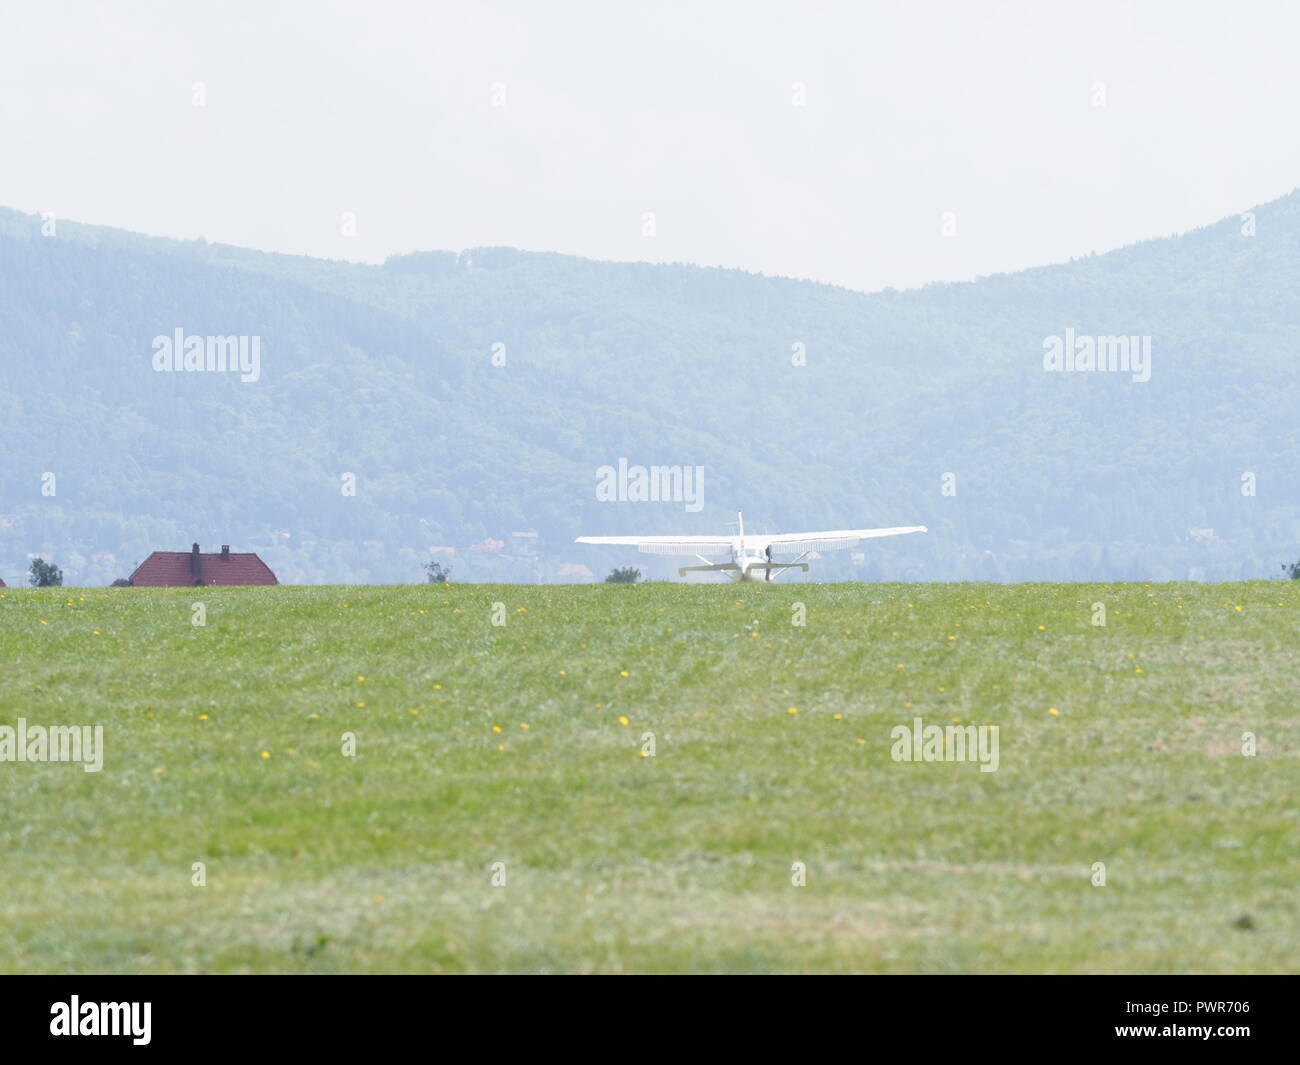 Sport white airplane lands on green grassy airfield landscape in european Bielsko-Biala city at Poland - Stock Image